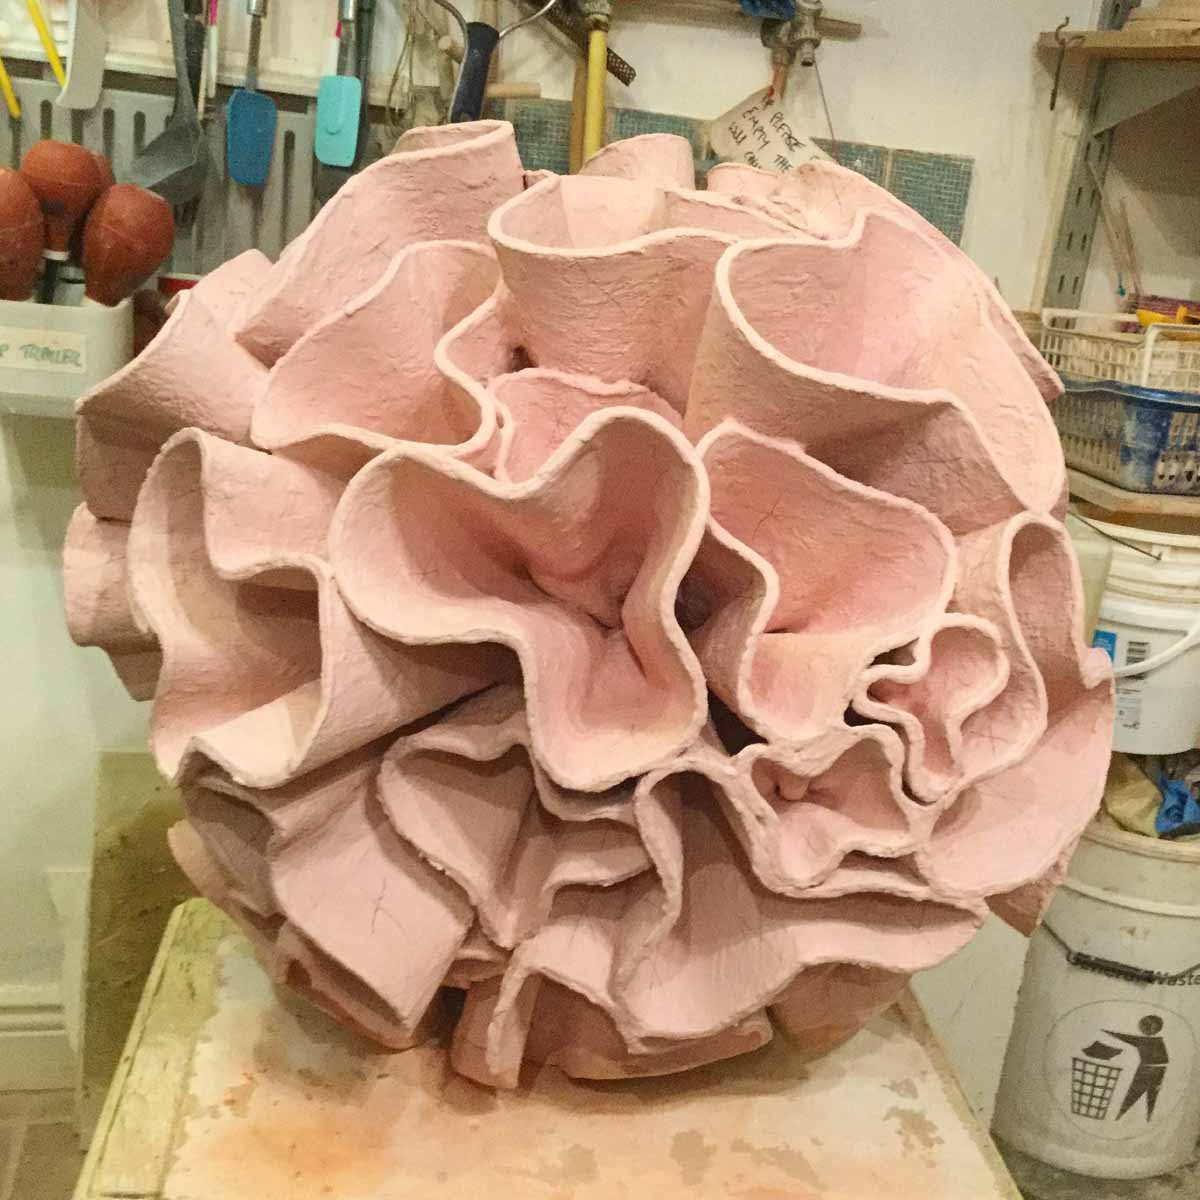 Ceramic water sculpture 'Synthesis' by Michelle Maher. Here is 'Synthesis' just before being loaded for the final glaze firing. This will be a dark red glaze after firing. Each bracket was sculpted individually. To be exhibited at Sculpture in Context 2016 at The National Botanic Gardens in Dublin. Inspired by Dahlia and Coral forms, it was handmade in my own grogged paper clay body and high fired in an electric kiln to 1260°C (Cone 8). www.ceramicforms.com